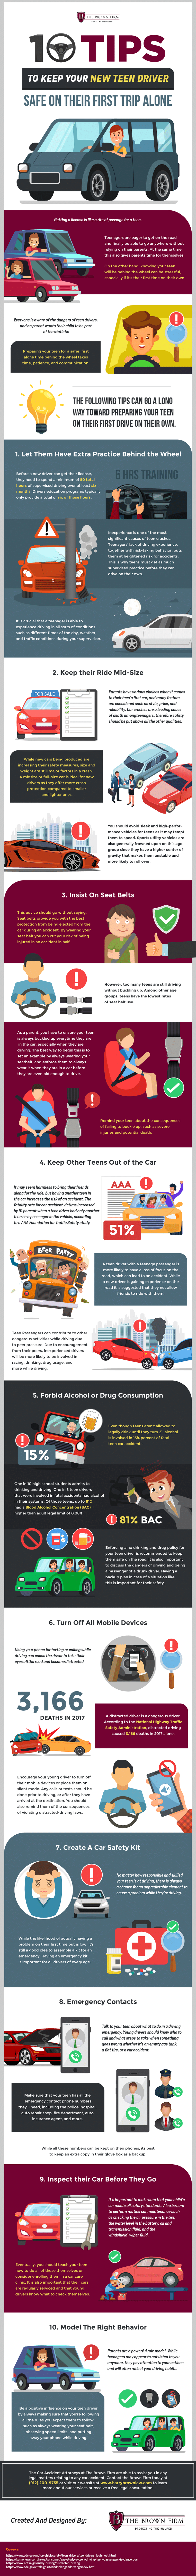 10 Tips to Keep Your New Teen Driver Safe infographic